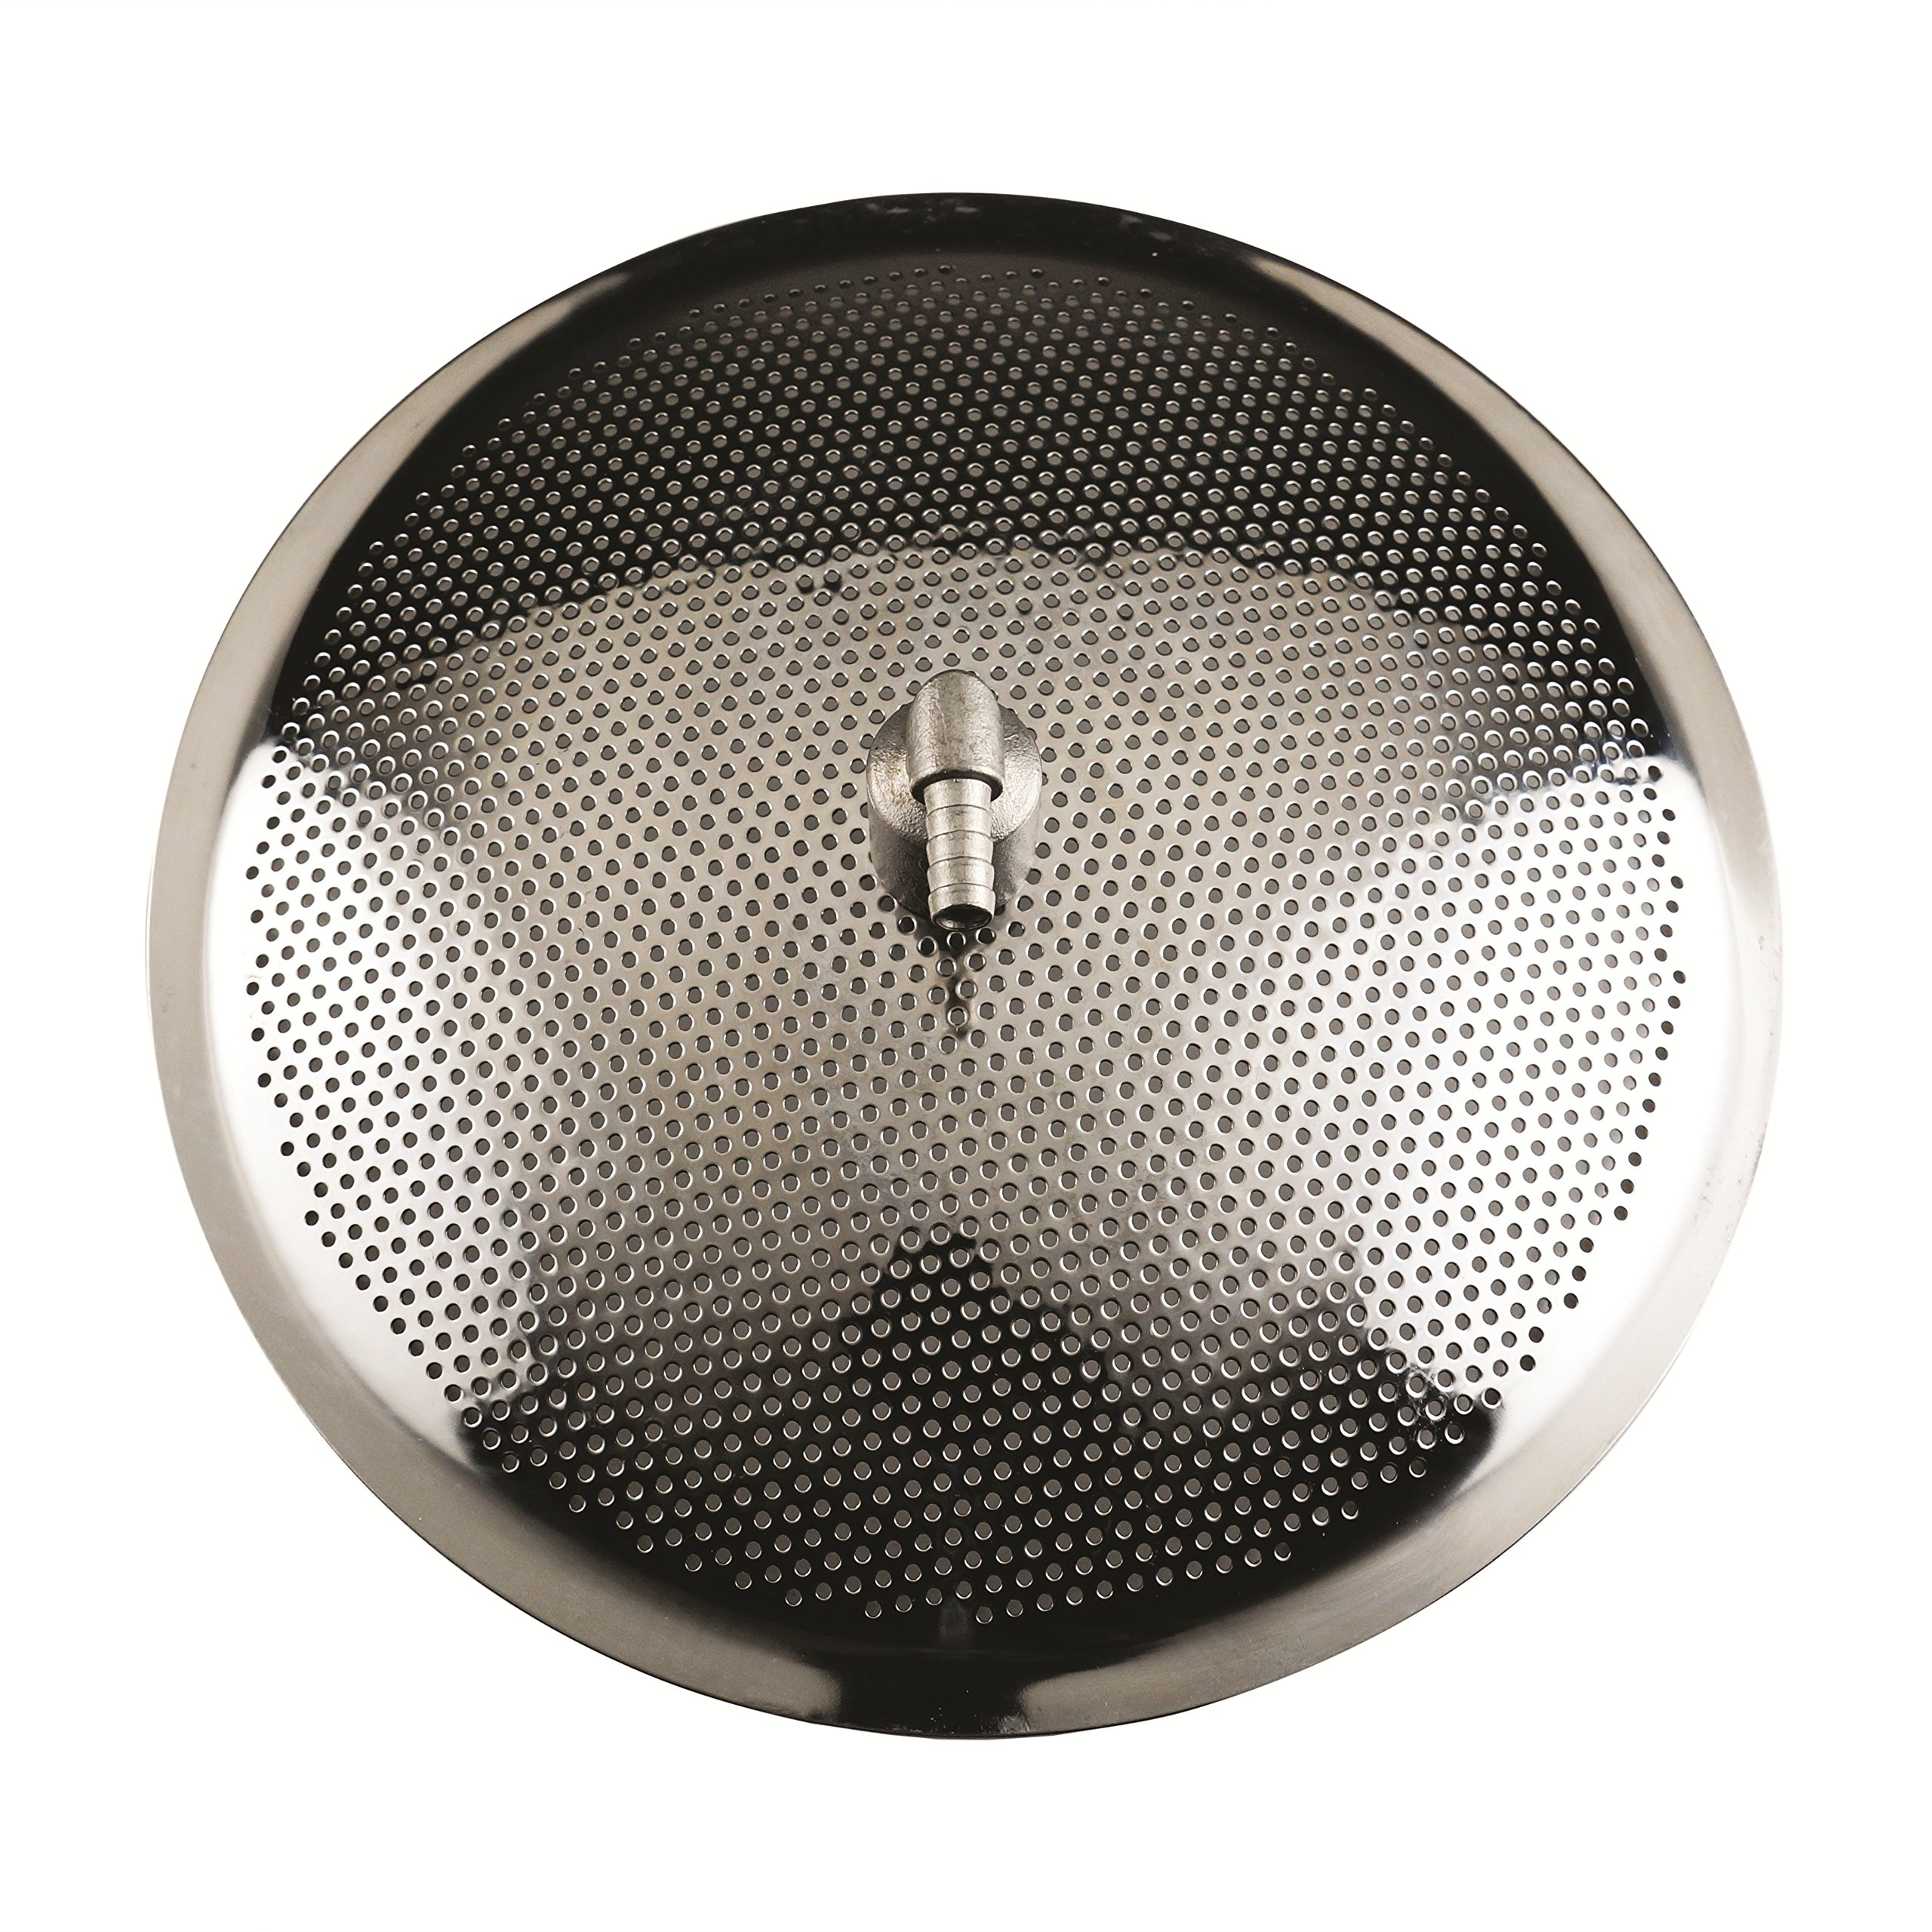 Northern Brewer - 11.5 Inch Titan Stainless Steel Universal False Bottom For Homebrew Pot - For All Grain Equipment Beer Brewing Mash Tun (11.5 Inch)